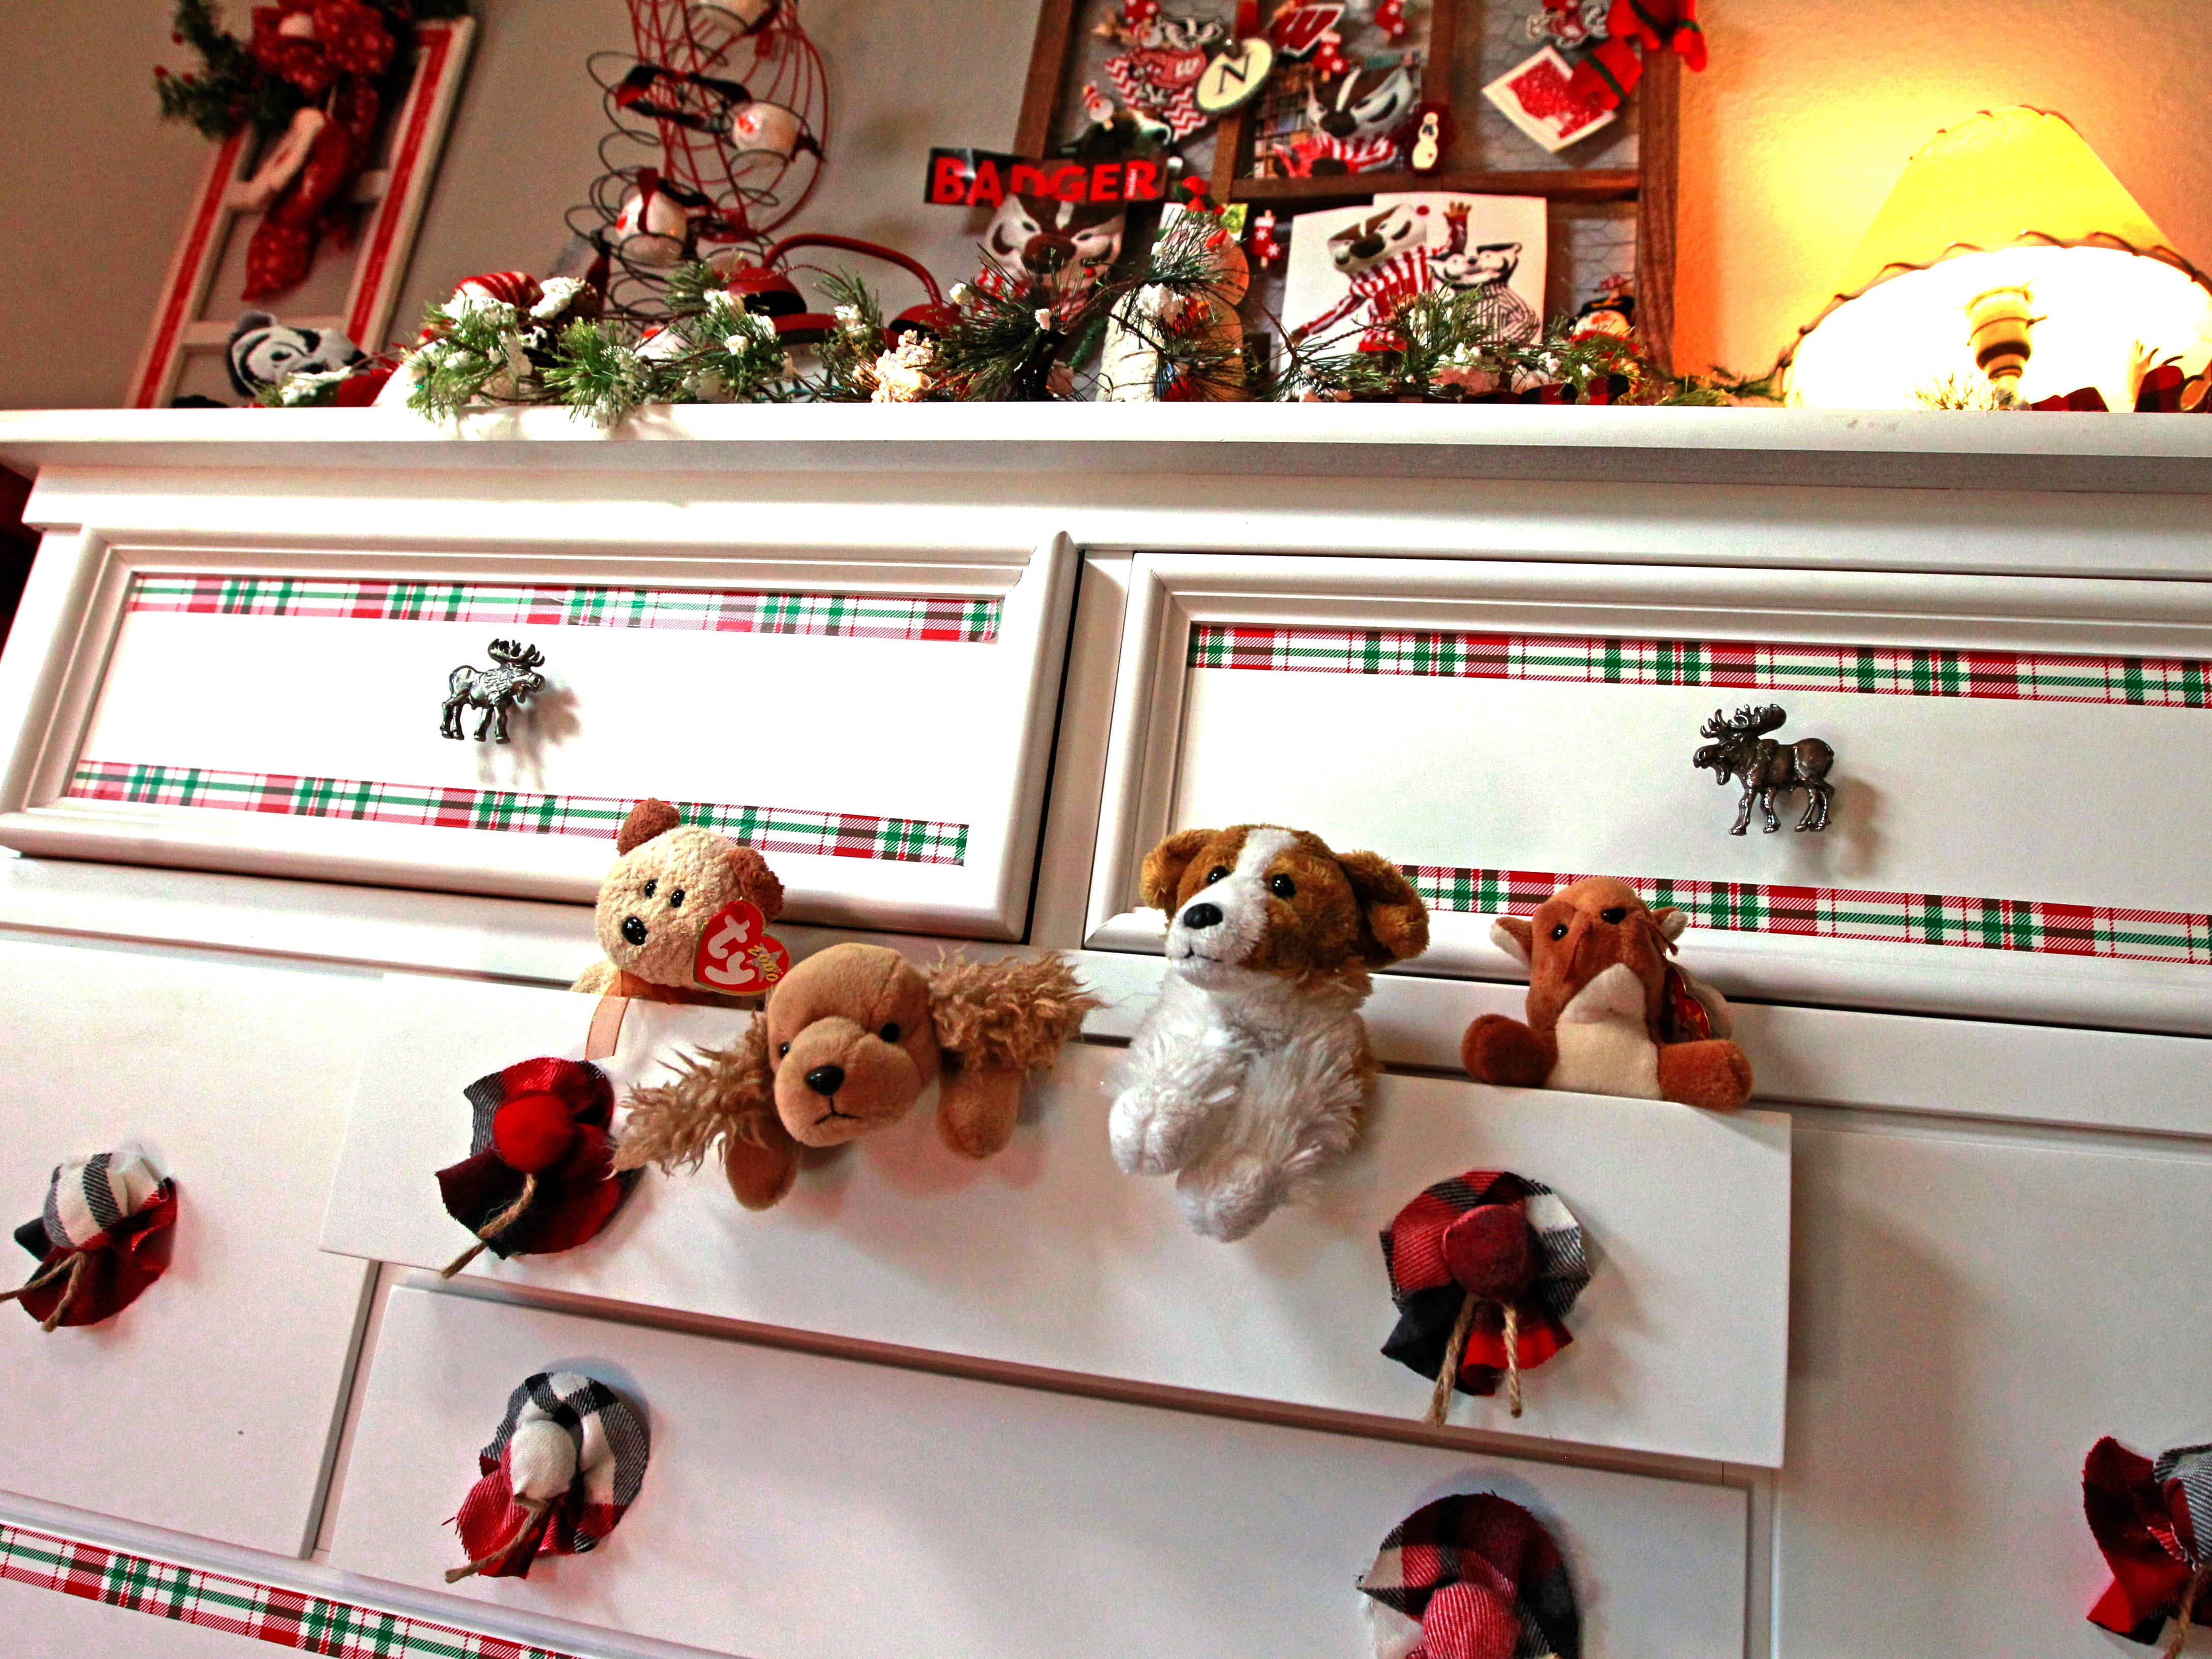 Stuffed animals spill out of a dresser drawer in this whimsical scene.